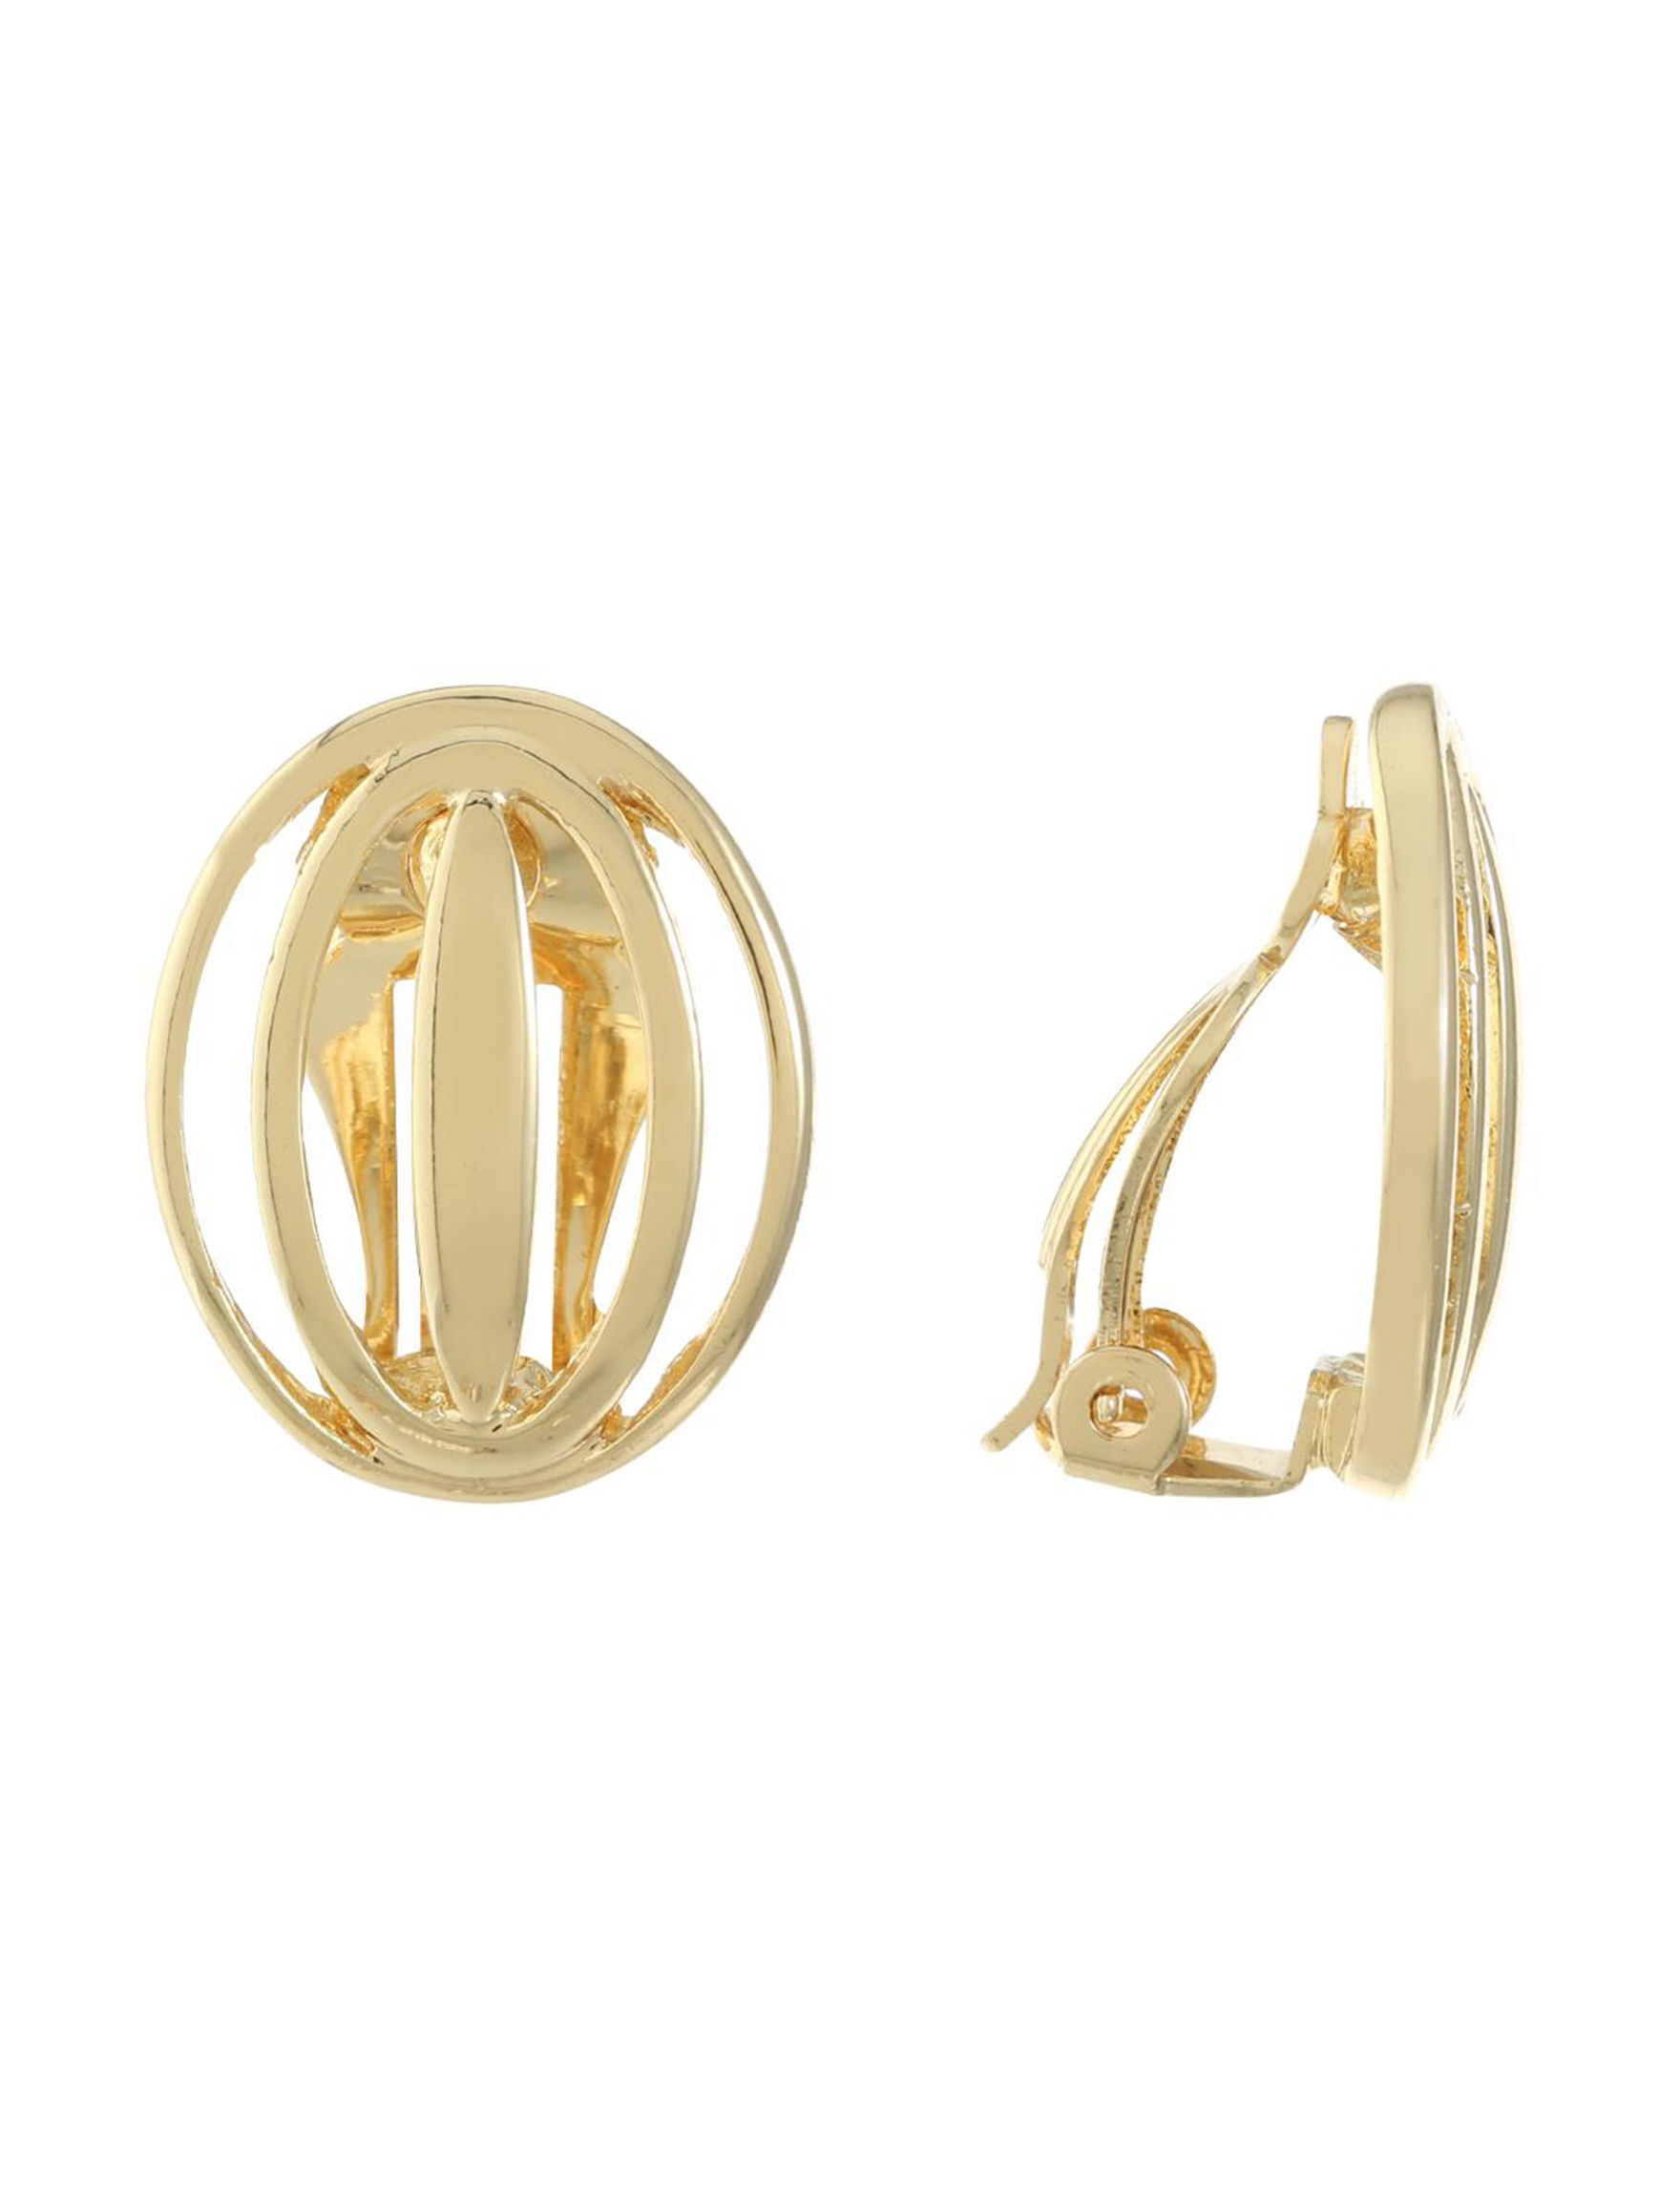 Gloria Vanderbilt Gold Fashion Jewelry